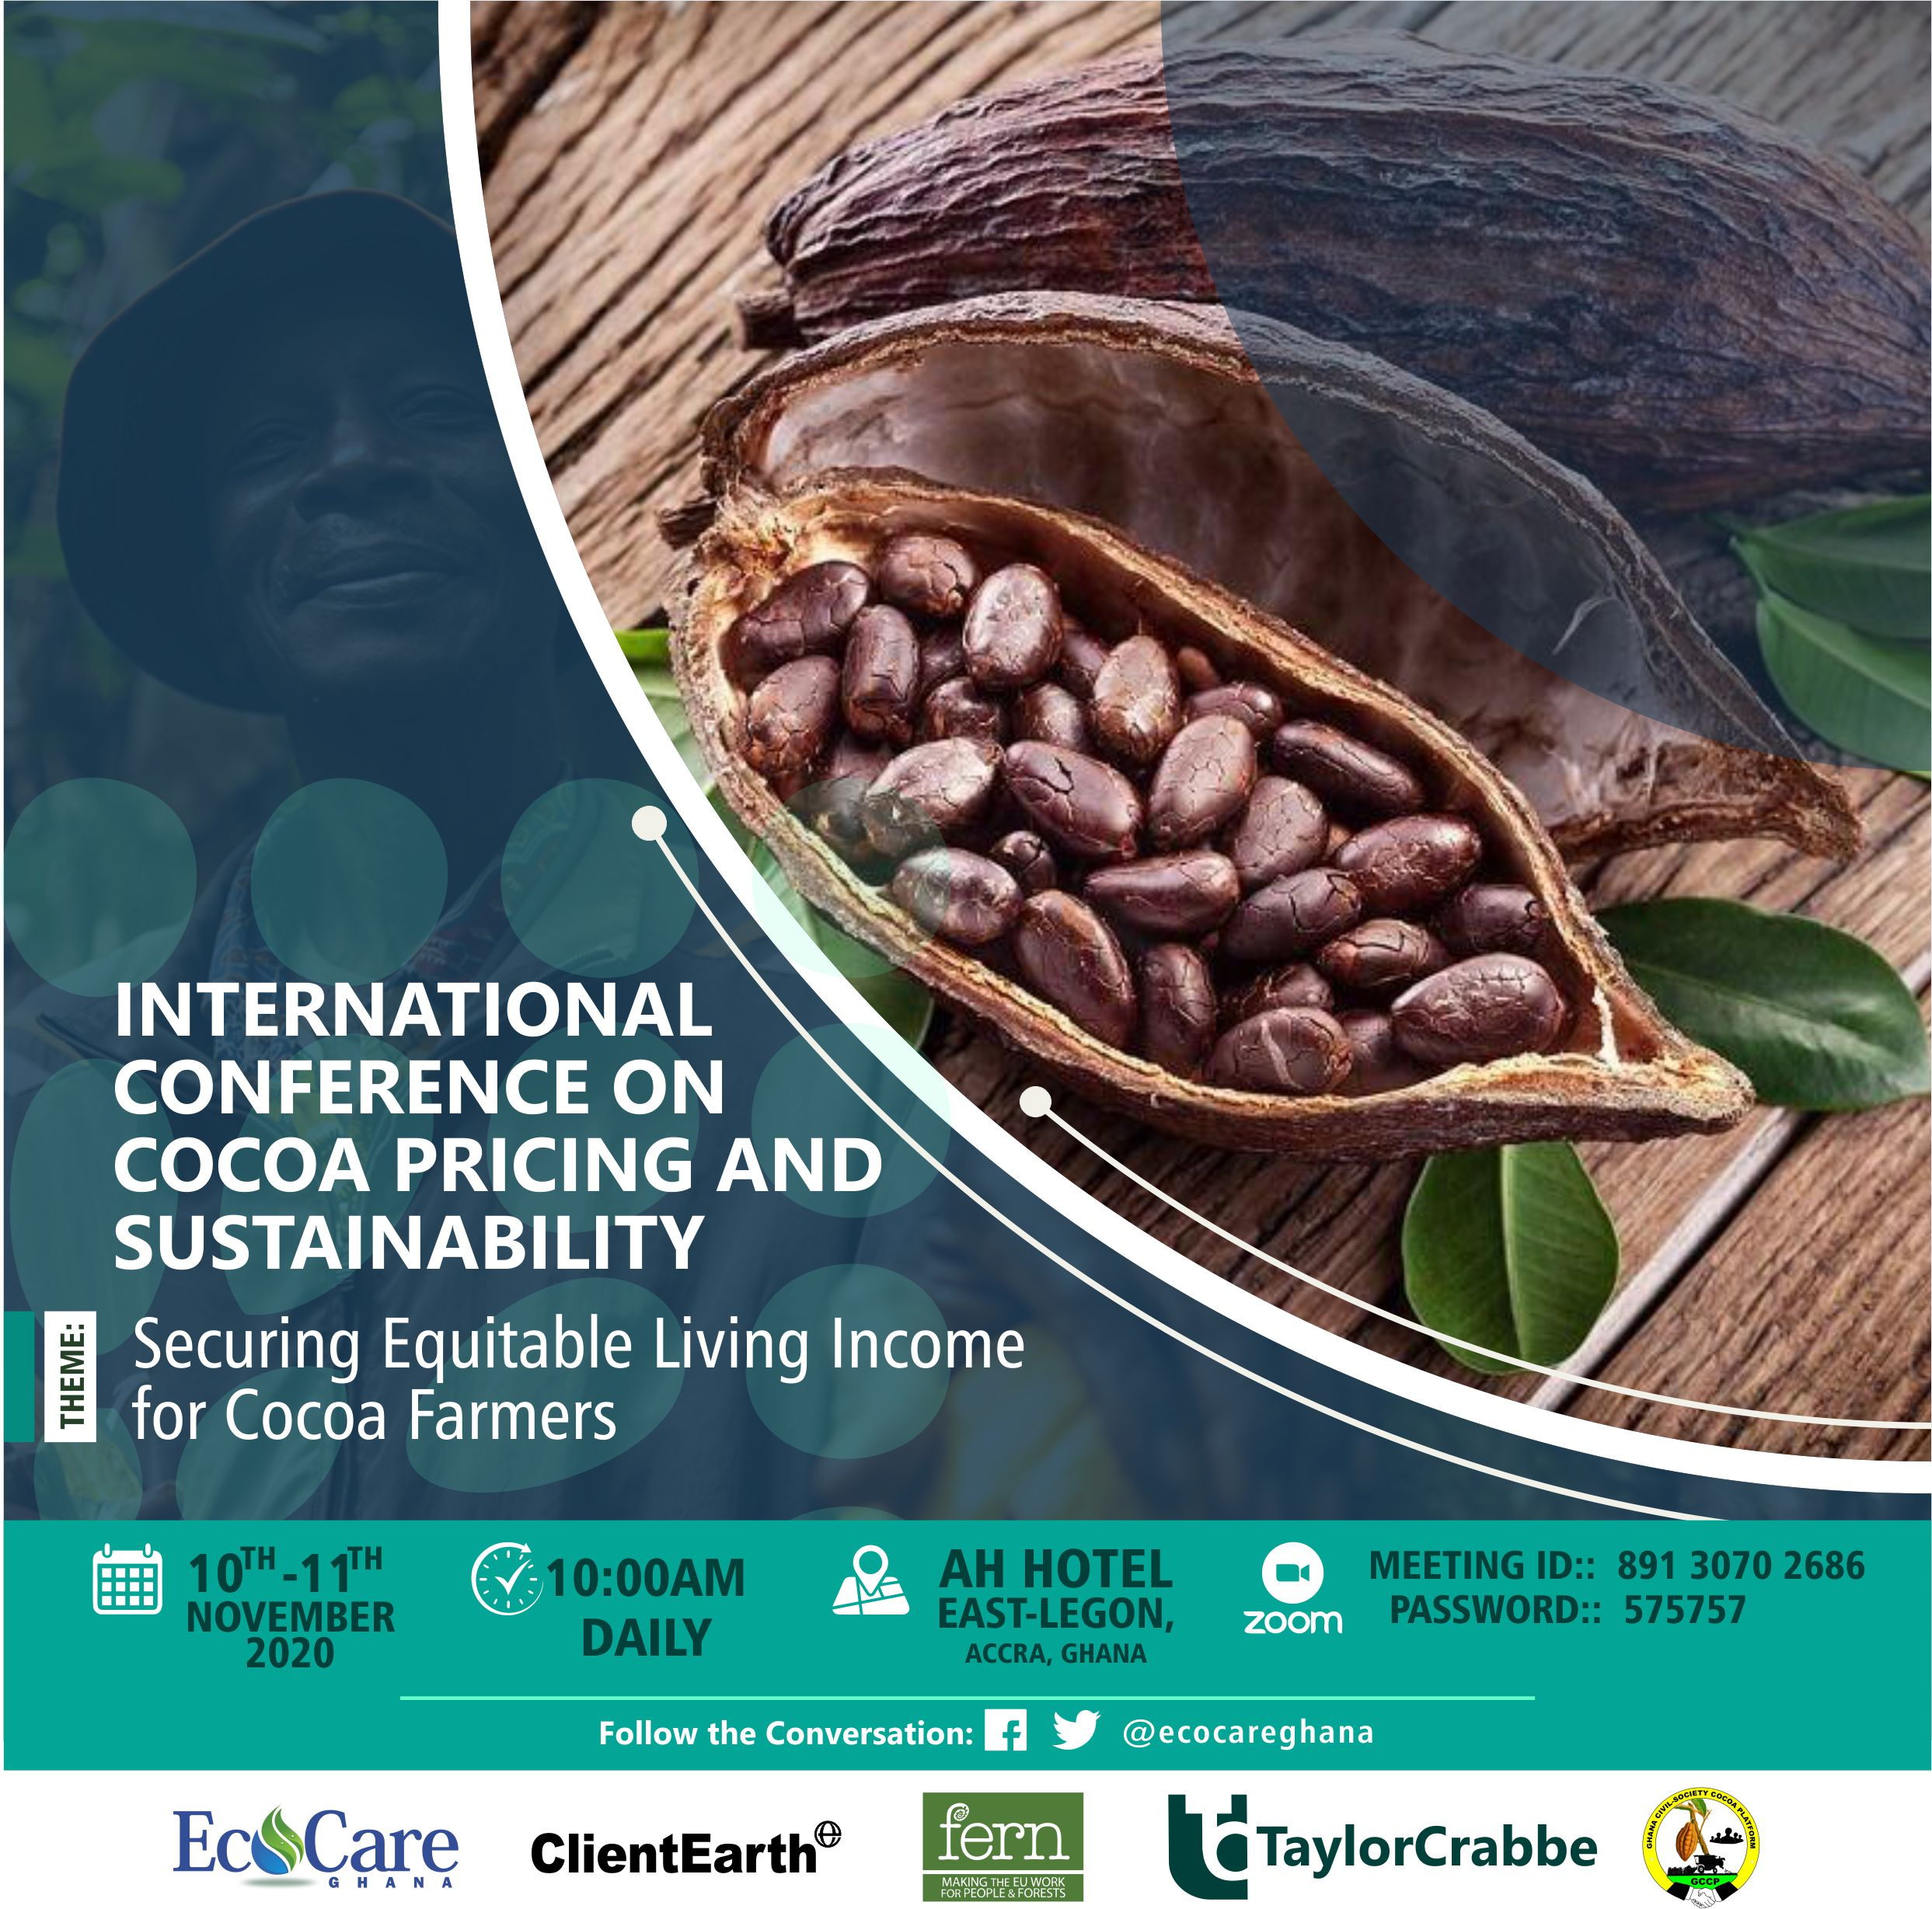 Cocoa industry stakeholders meet to device strategies to secure equitable living income for cocoa farmers